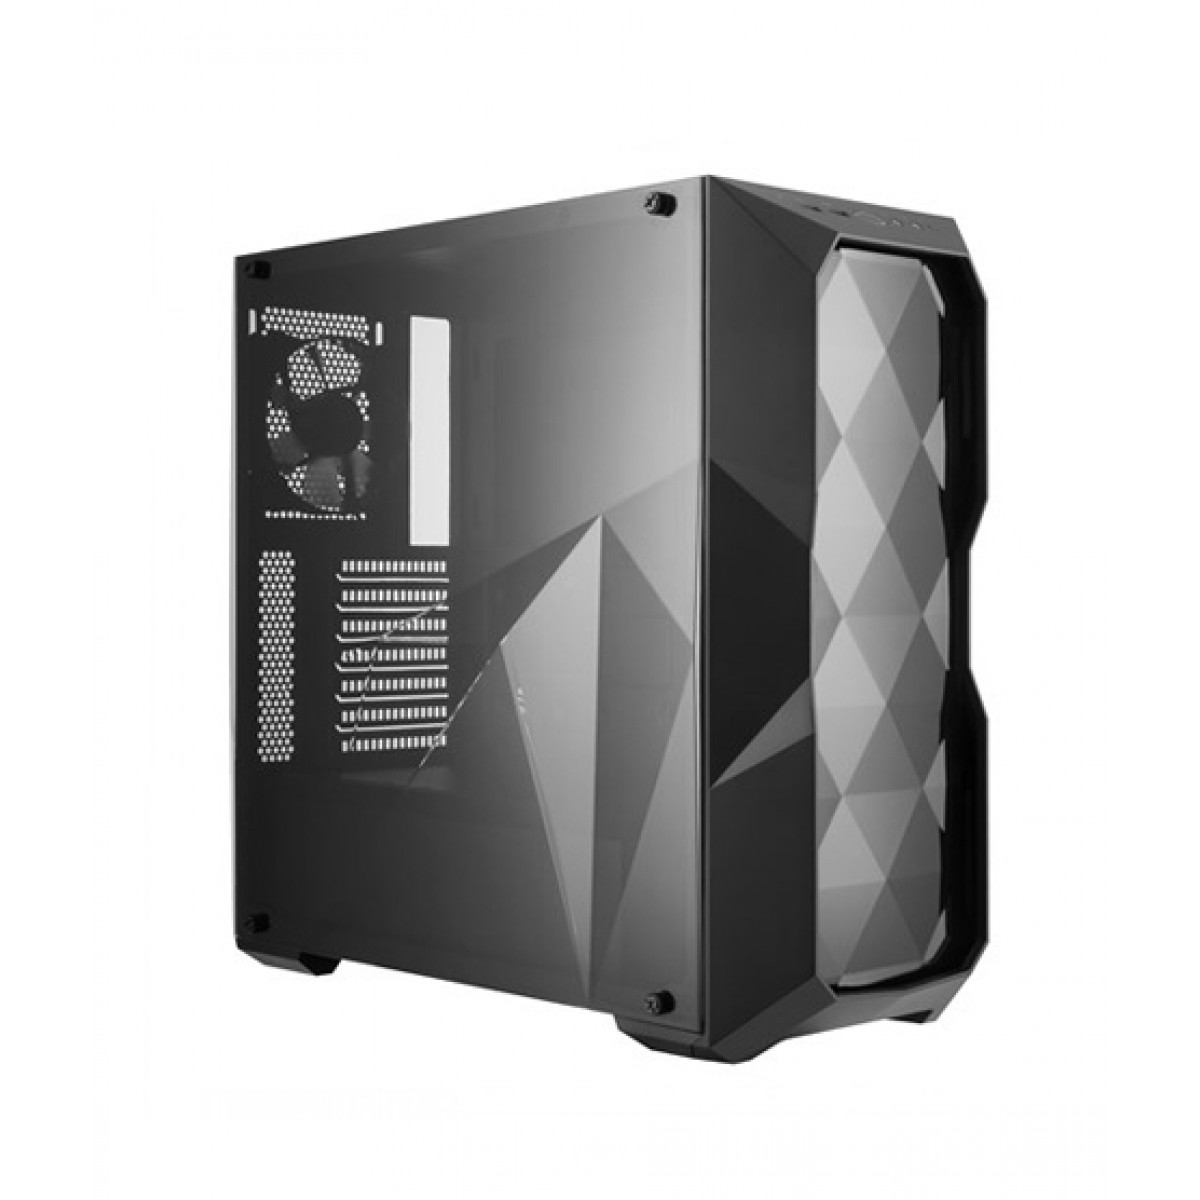 84ccd54a4f0 Cooler Master Masterbox TD500L Mid-Tower PC Casing Price in Pakistan ...